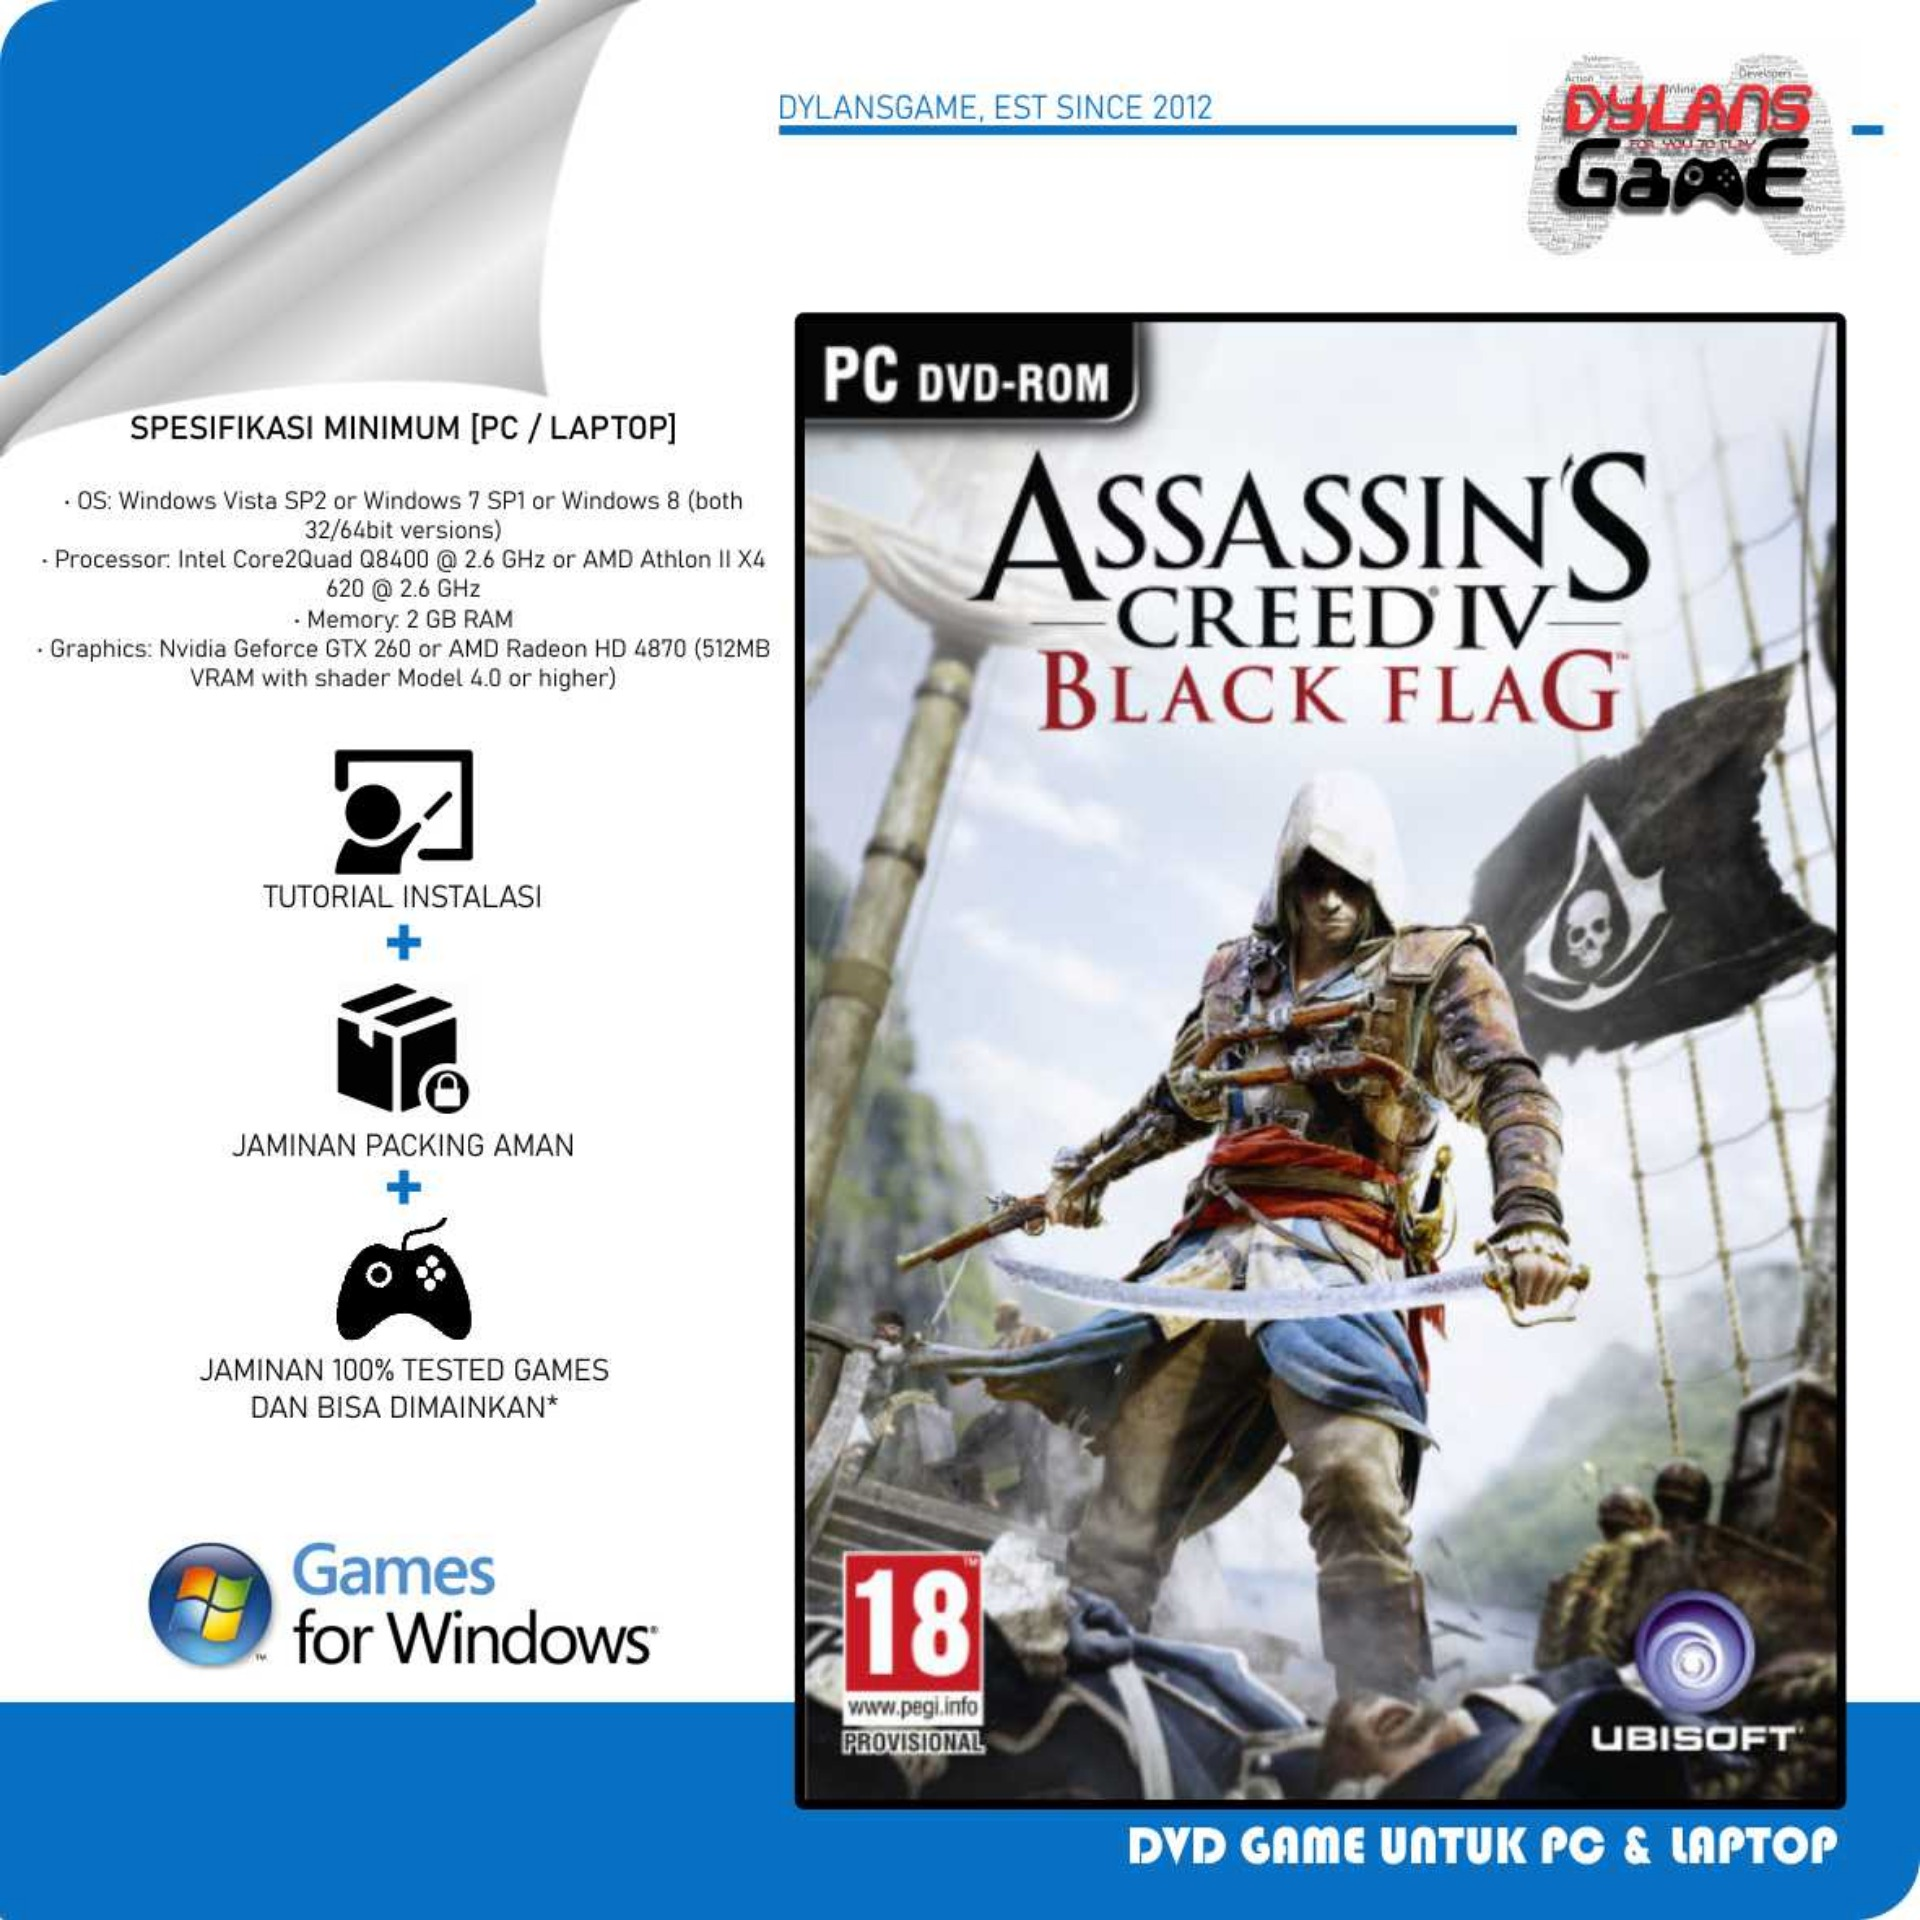 https://www.lazada.co.id/products/assassins-creed-4-black-flag-pc-game-dvd-game-pc-laptop-i242707088-s293307570.html